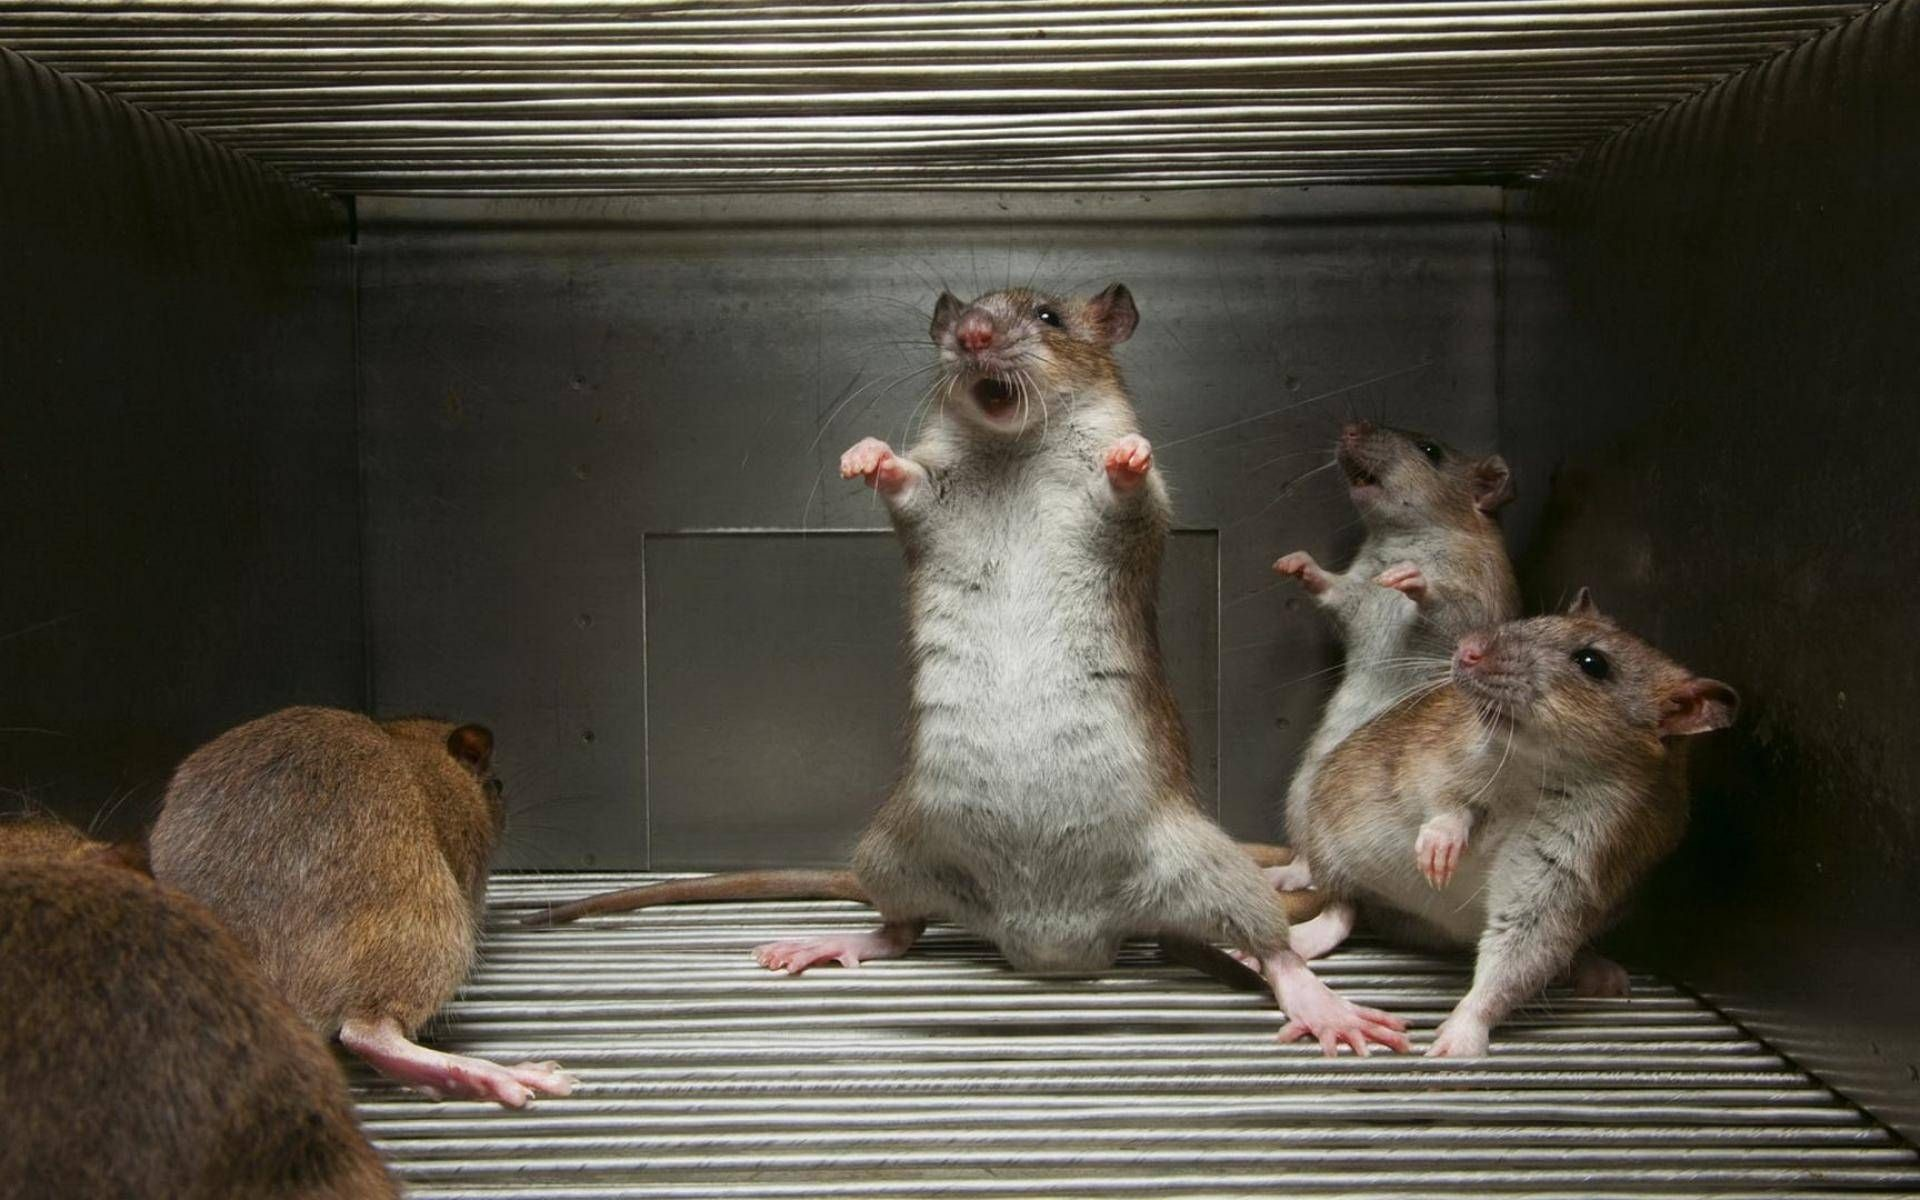 Res: 1920x1200, Studies of laughing chimpanzees and rats offer clues about our evolutionary  past—as well as our mental health.